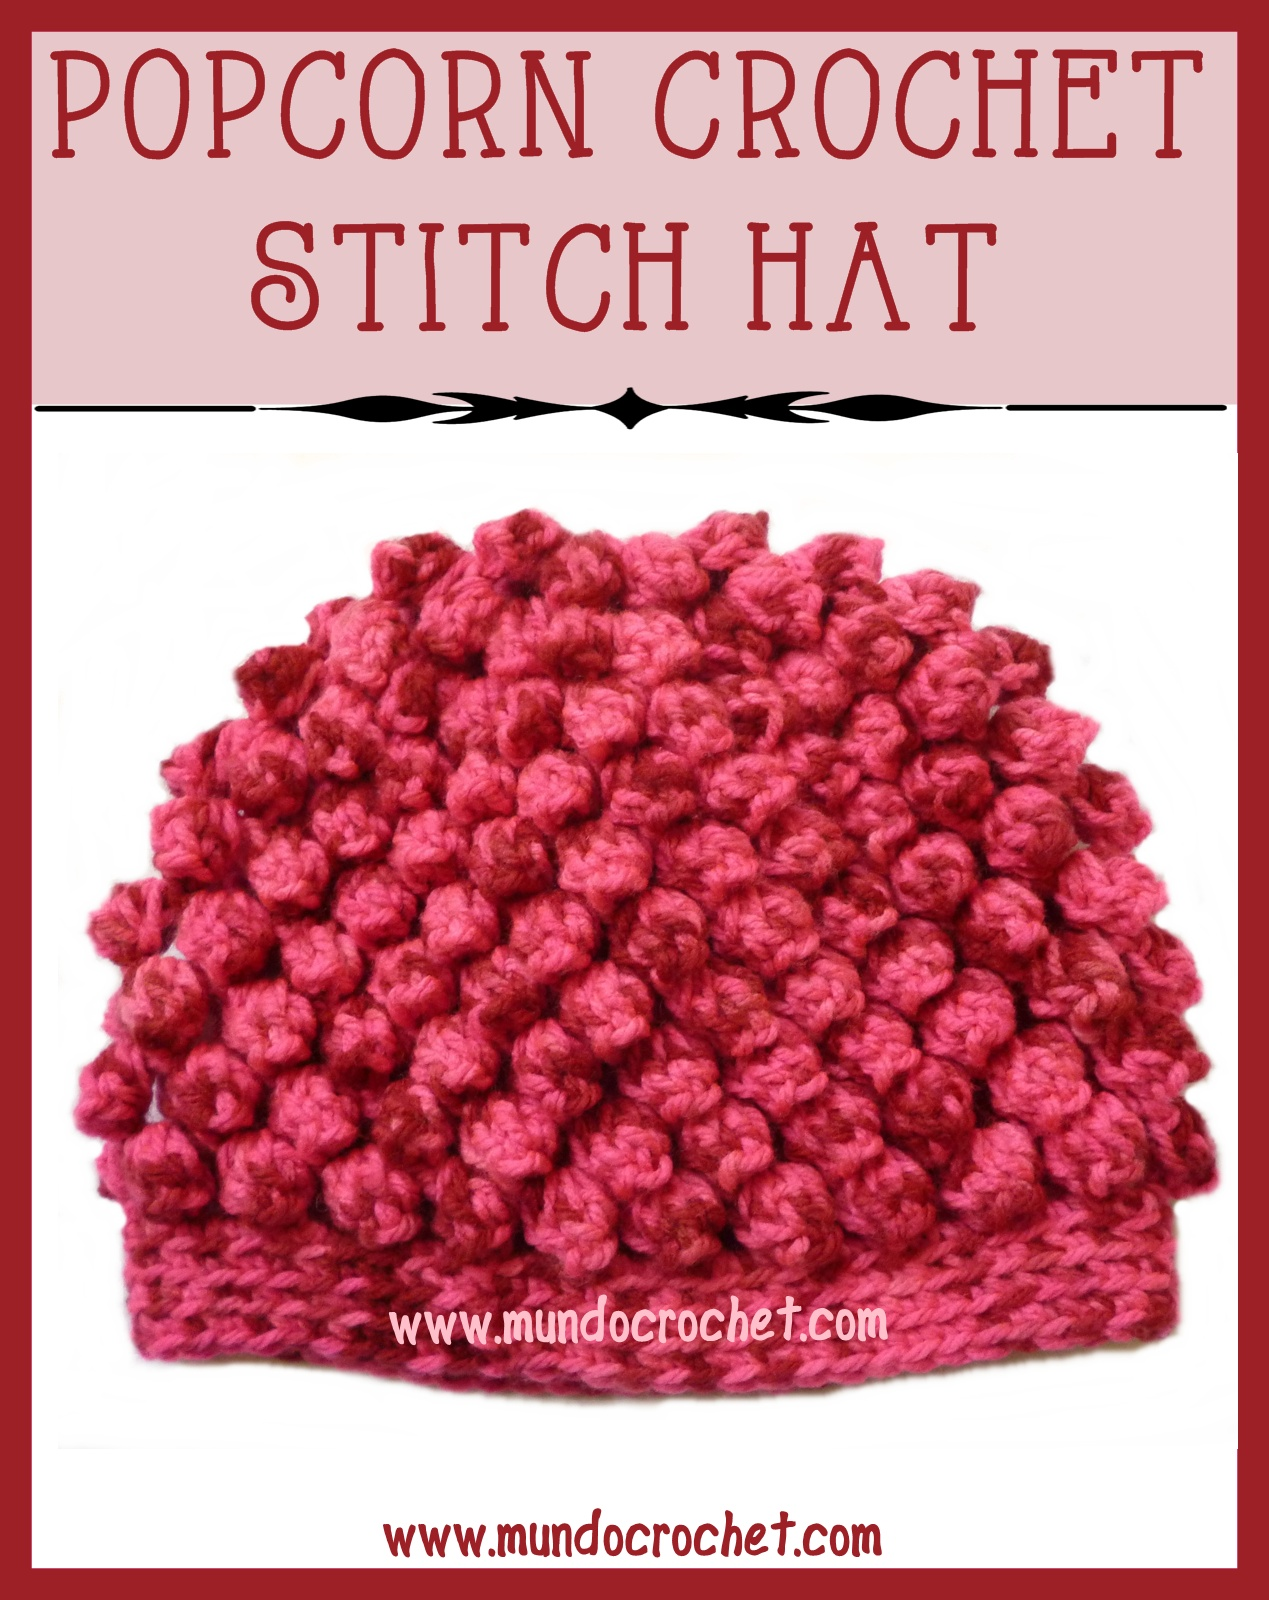 Crochet Stitches Wiki : Free Popcorn Stitch Crochet Hat Patterns